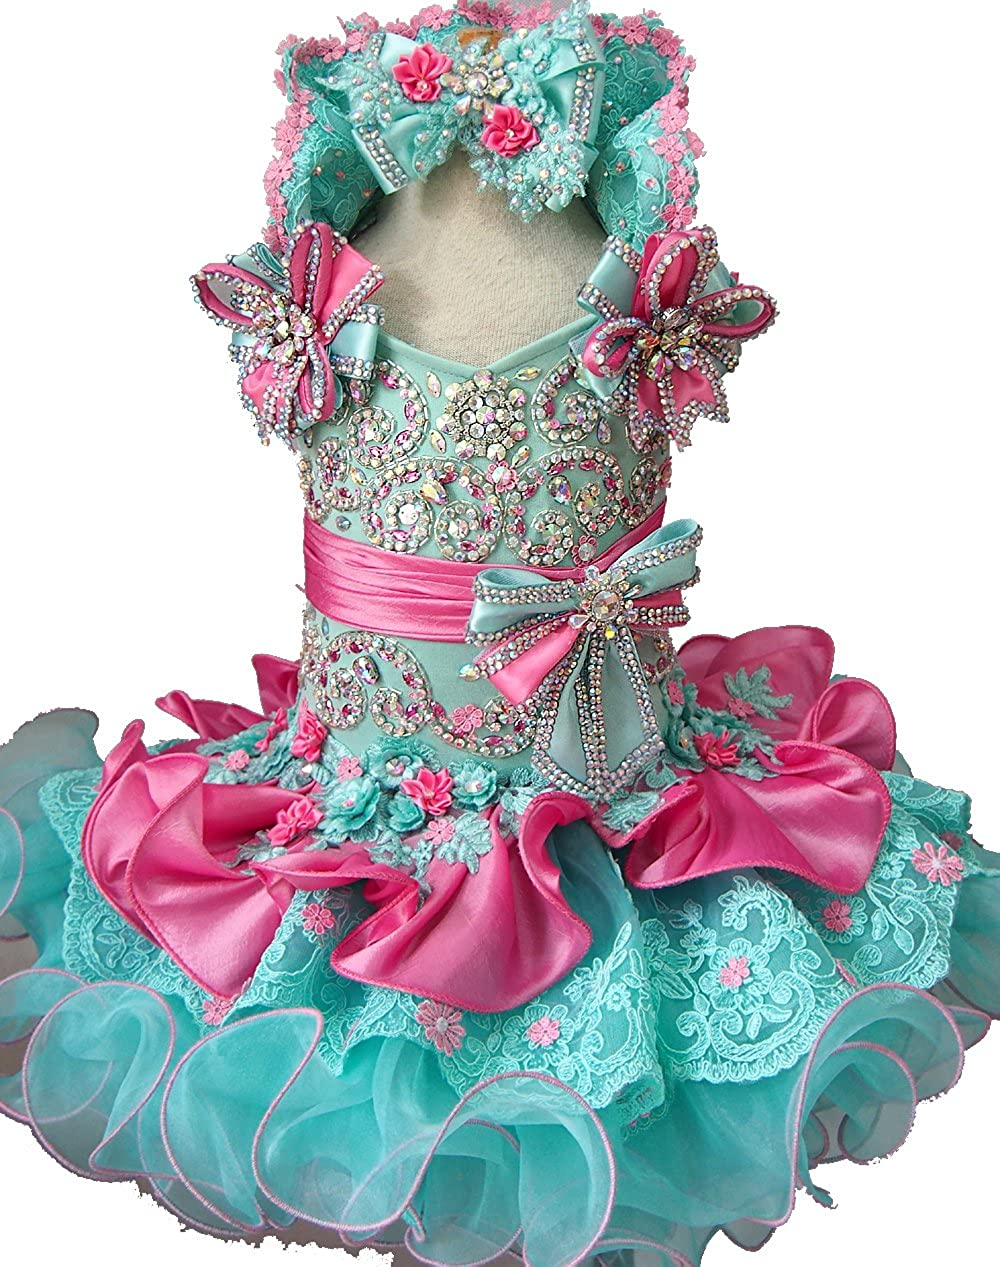 Jenniferwu Infant Toddler Baby Newborn Little Girls Pageant Party Birthday Dress G015A Custom Make from Size 1 to Size 7